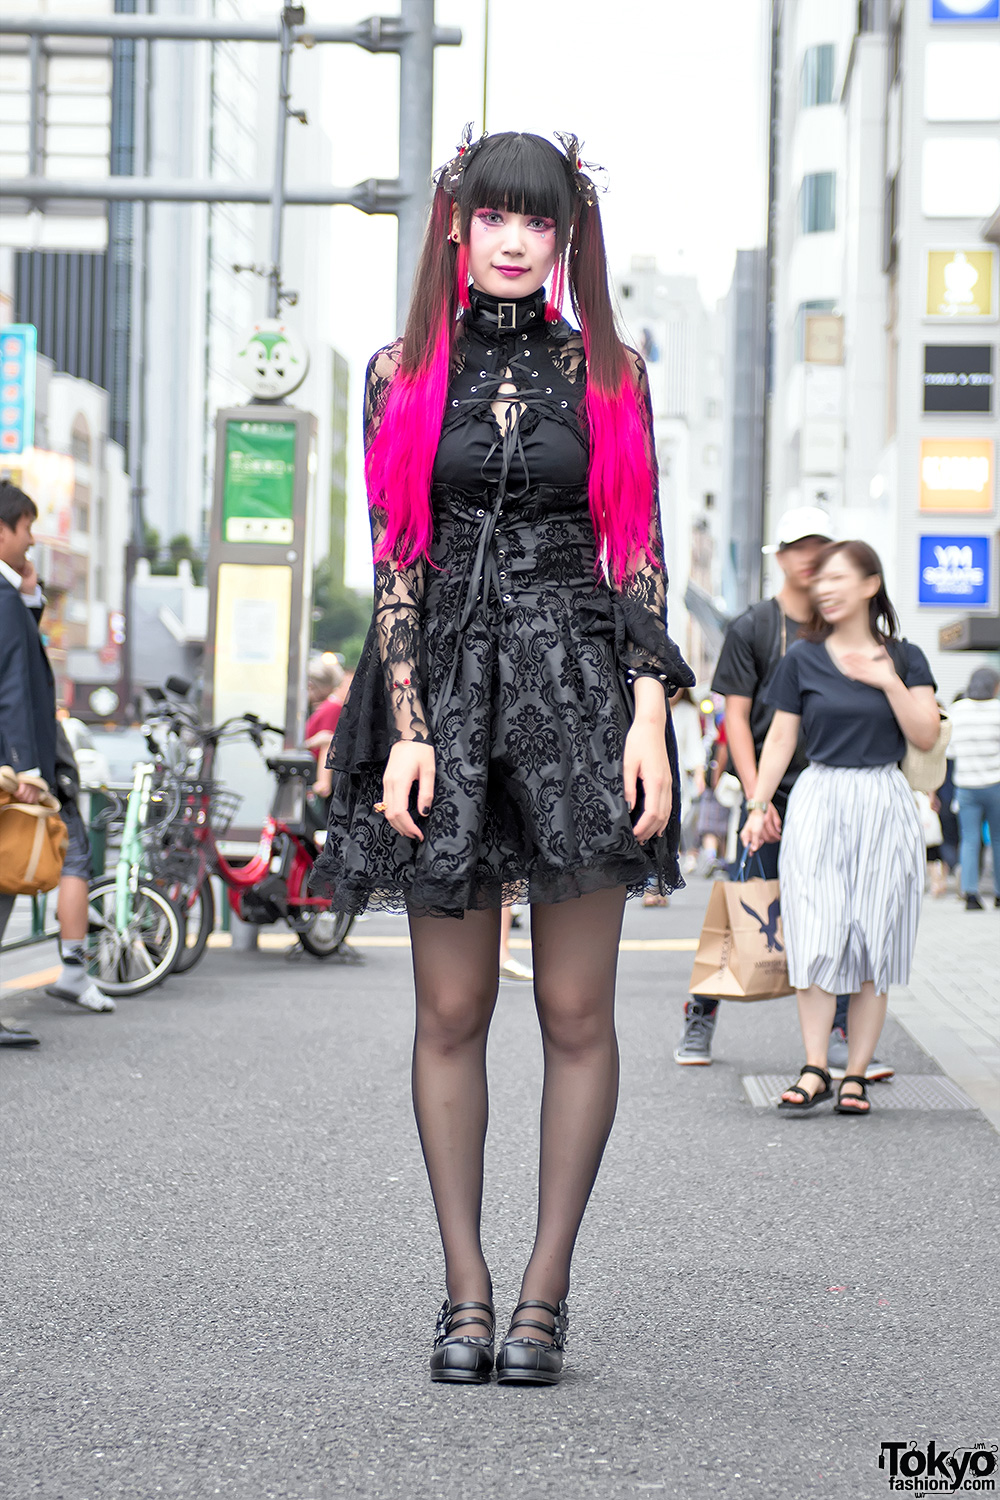 Pink Twintails, Gothic Harajuku Street Fashion & Heart ...